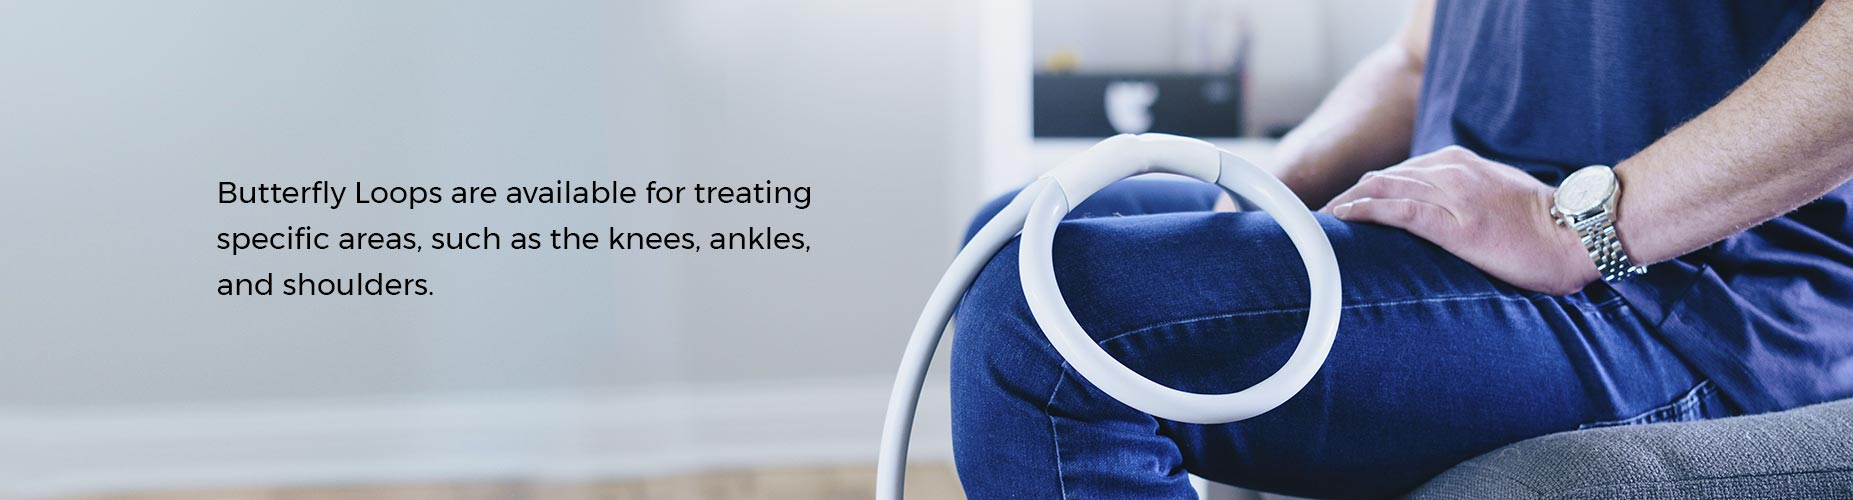 Butterfly Loops are available for treating specific areas, such as the knees, ankles, and shoulders.